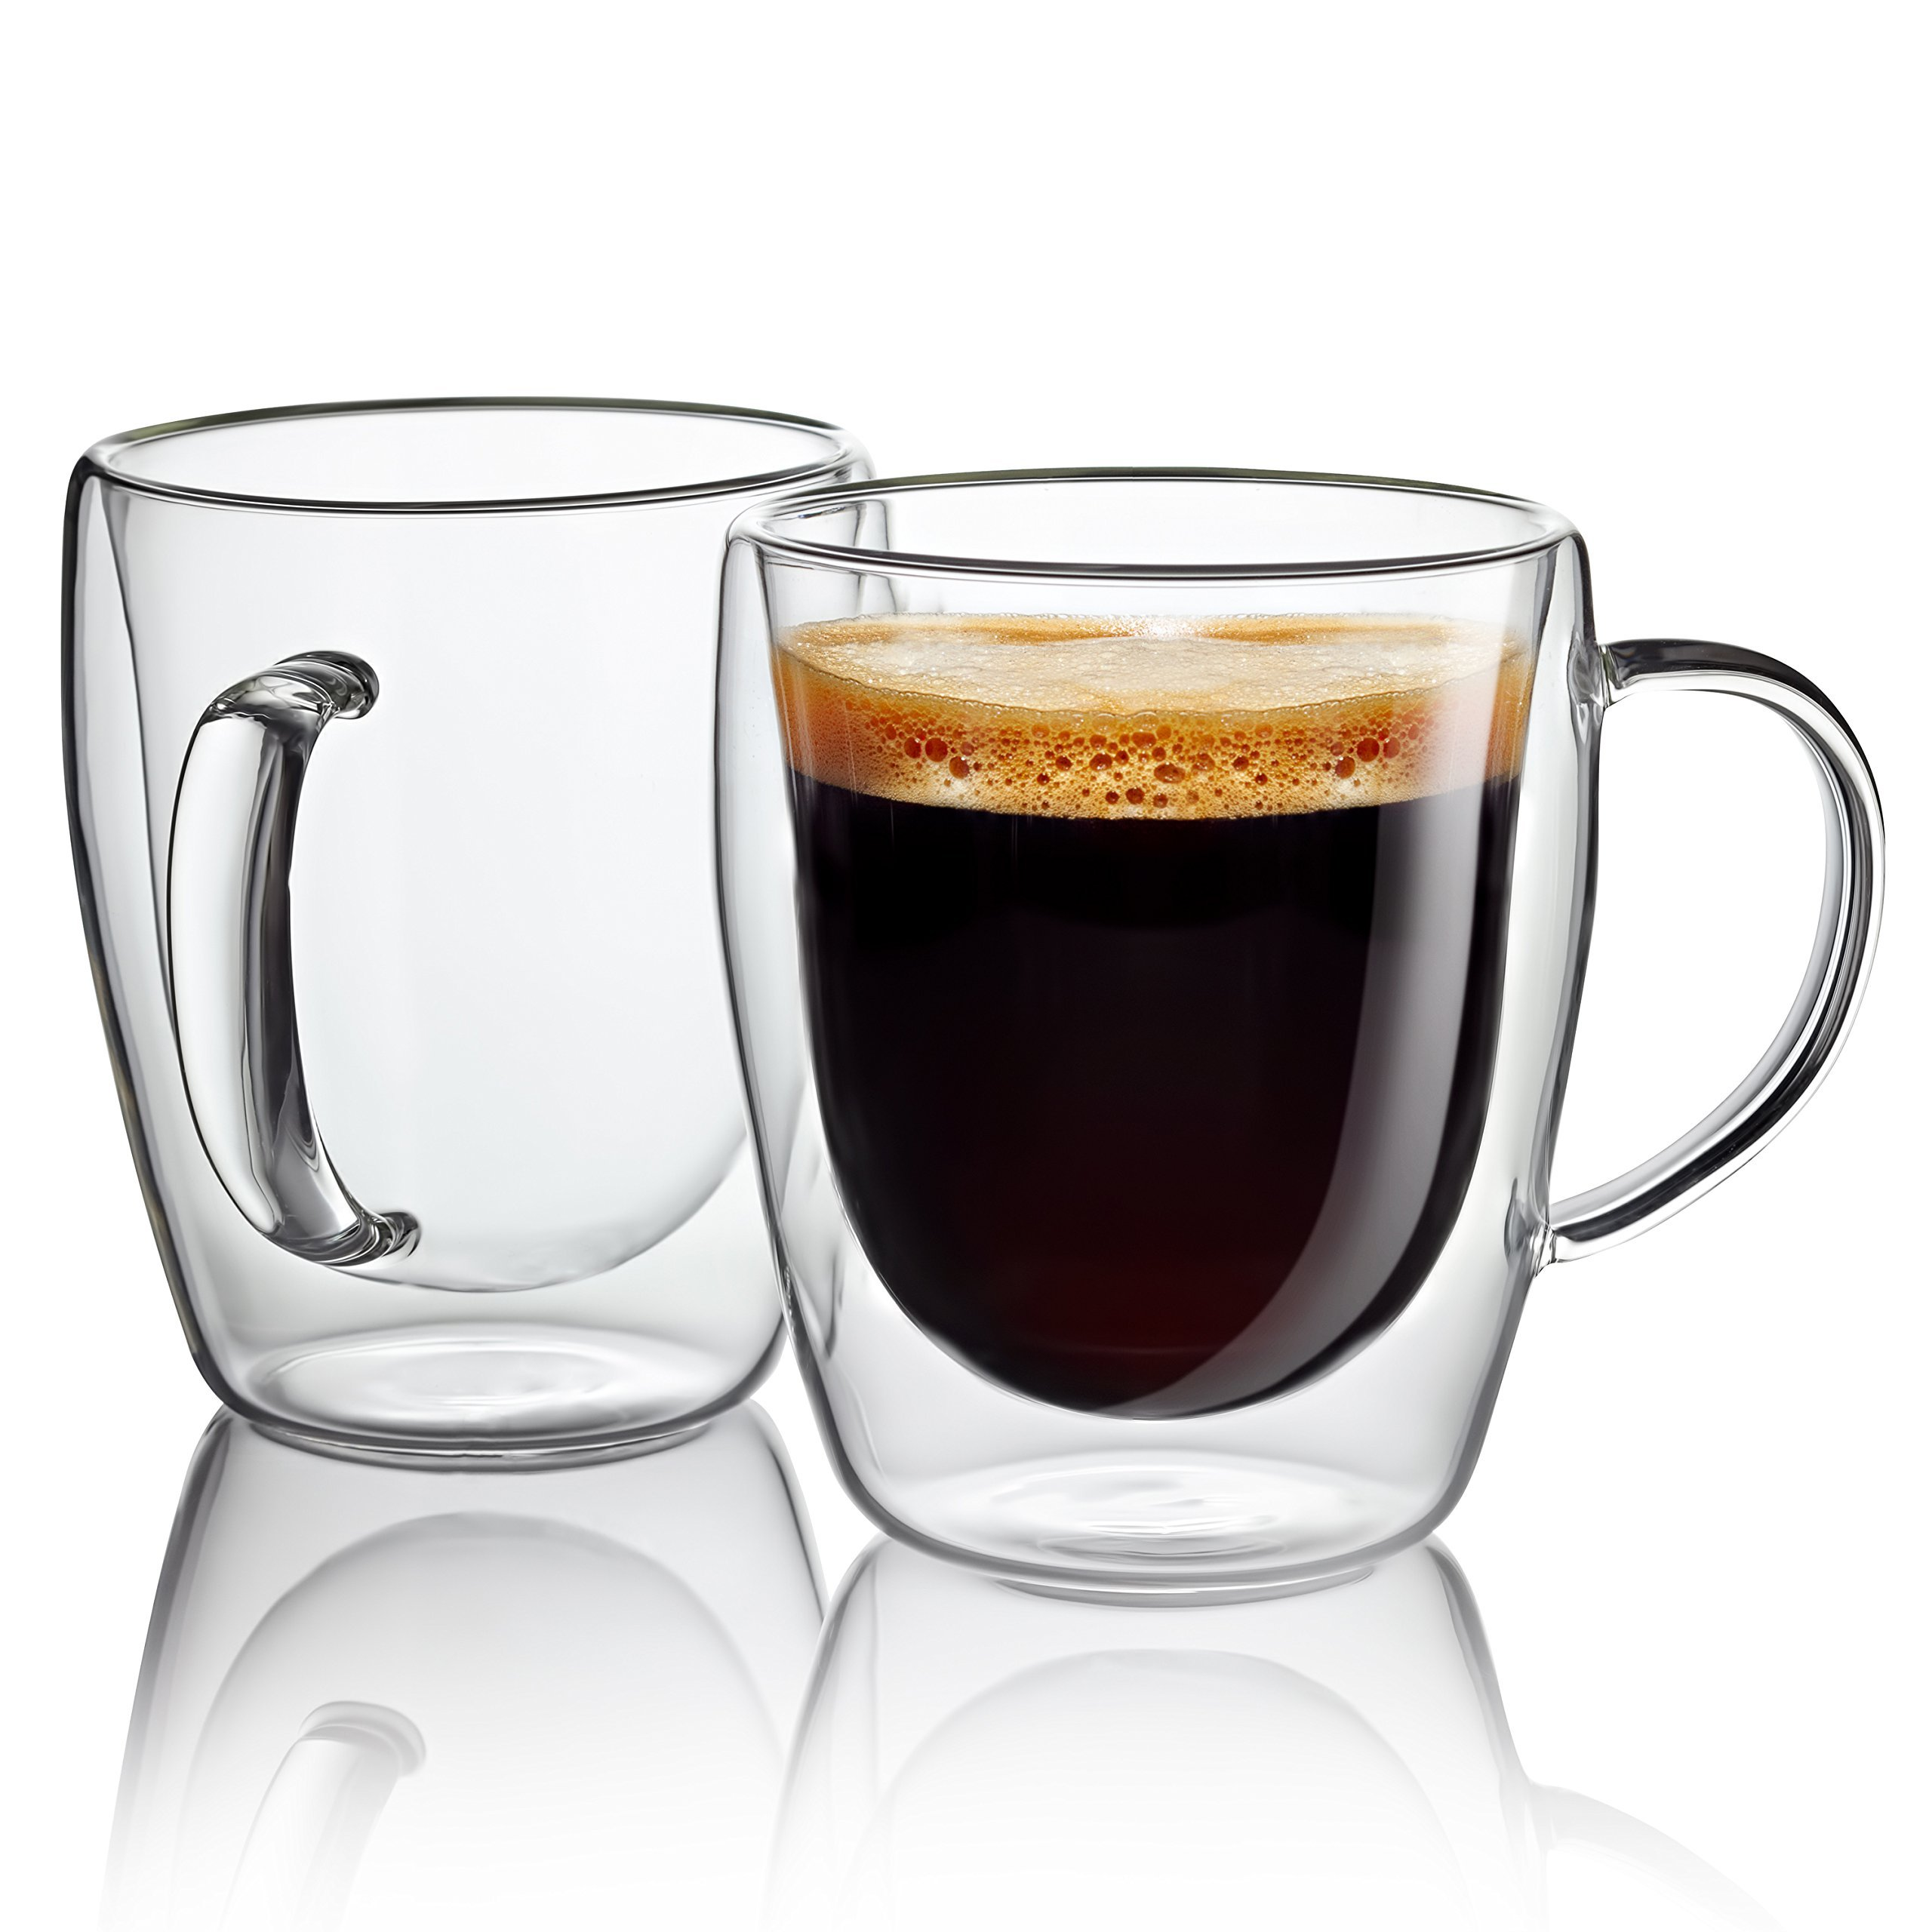 Jecobi Indulge, Set Of 2 Mugs, Strong Double Walled Insulated drinking glasses with handle, 10 oz Glass Coffee Cups Dishwasher. Microwave, freezer with NO RISK. by JECOBI (Image #1)